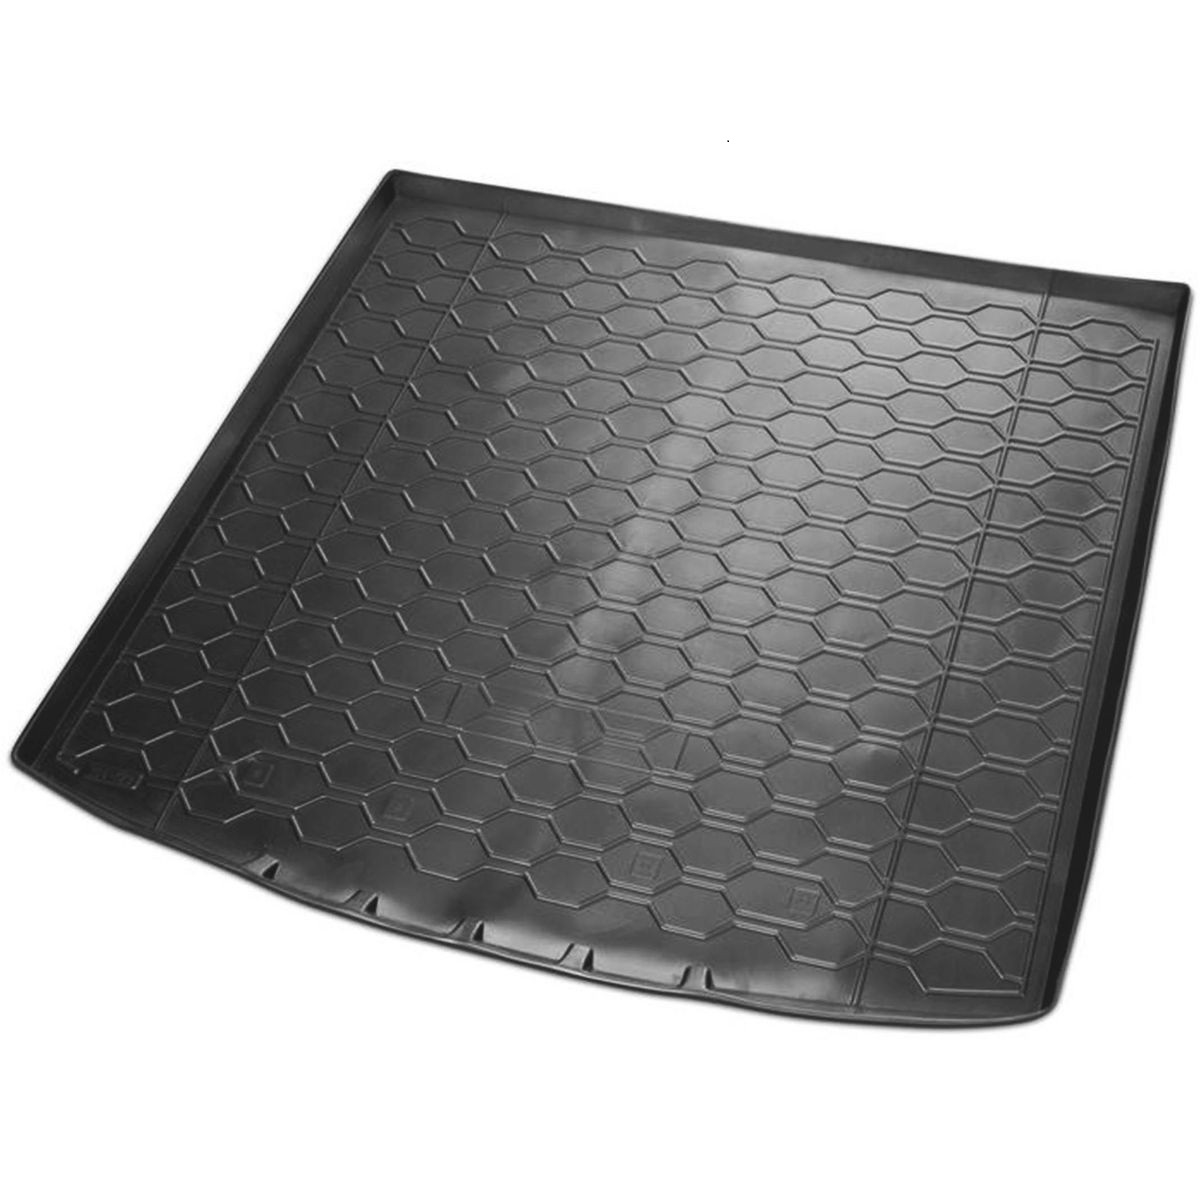 Boot Mat Rival 15102002 for Skoda Rapid sedan коврик багажника rival для skoda rapid 2013 н в полиуретан 15102002